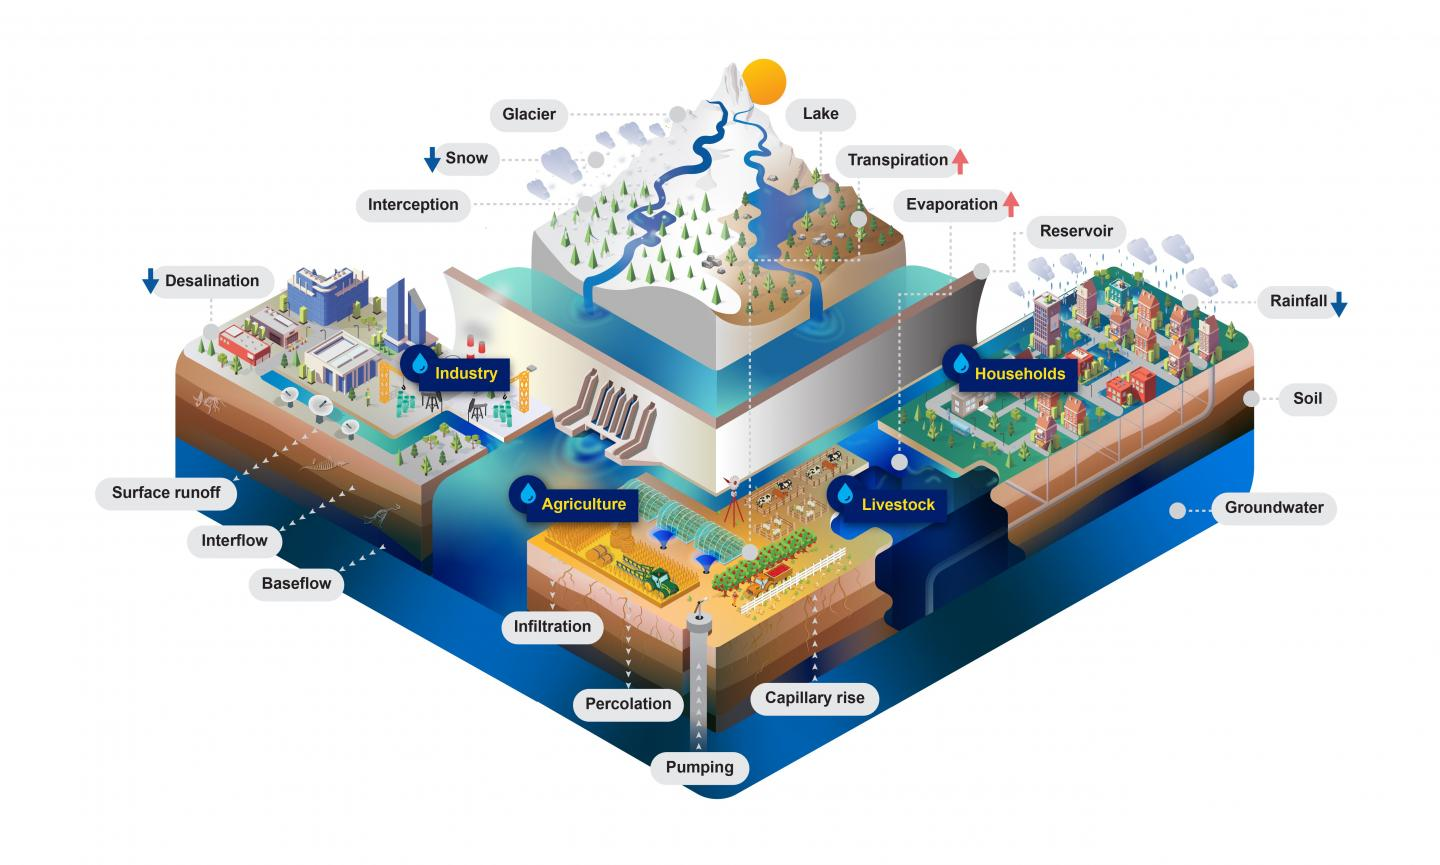 The Community Water Model